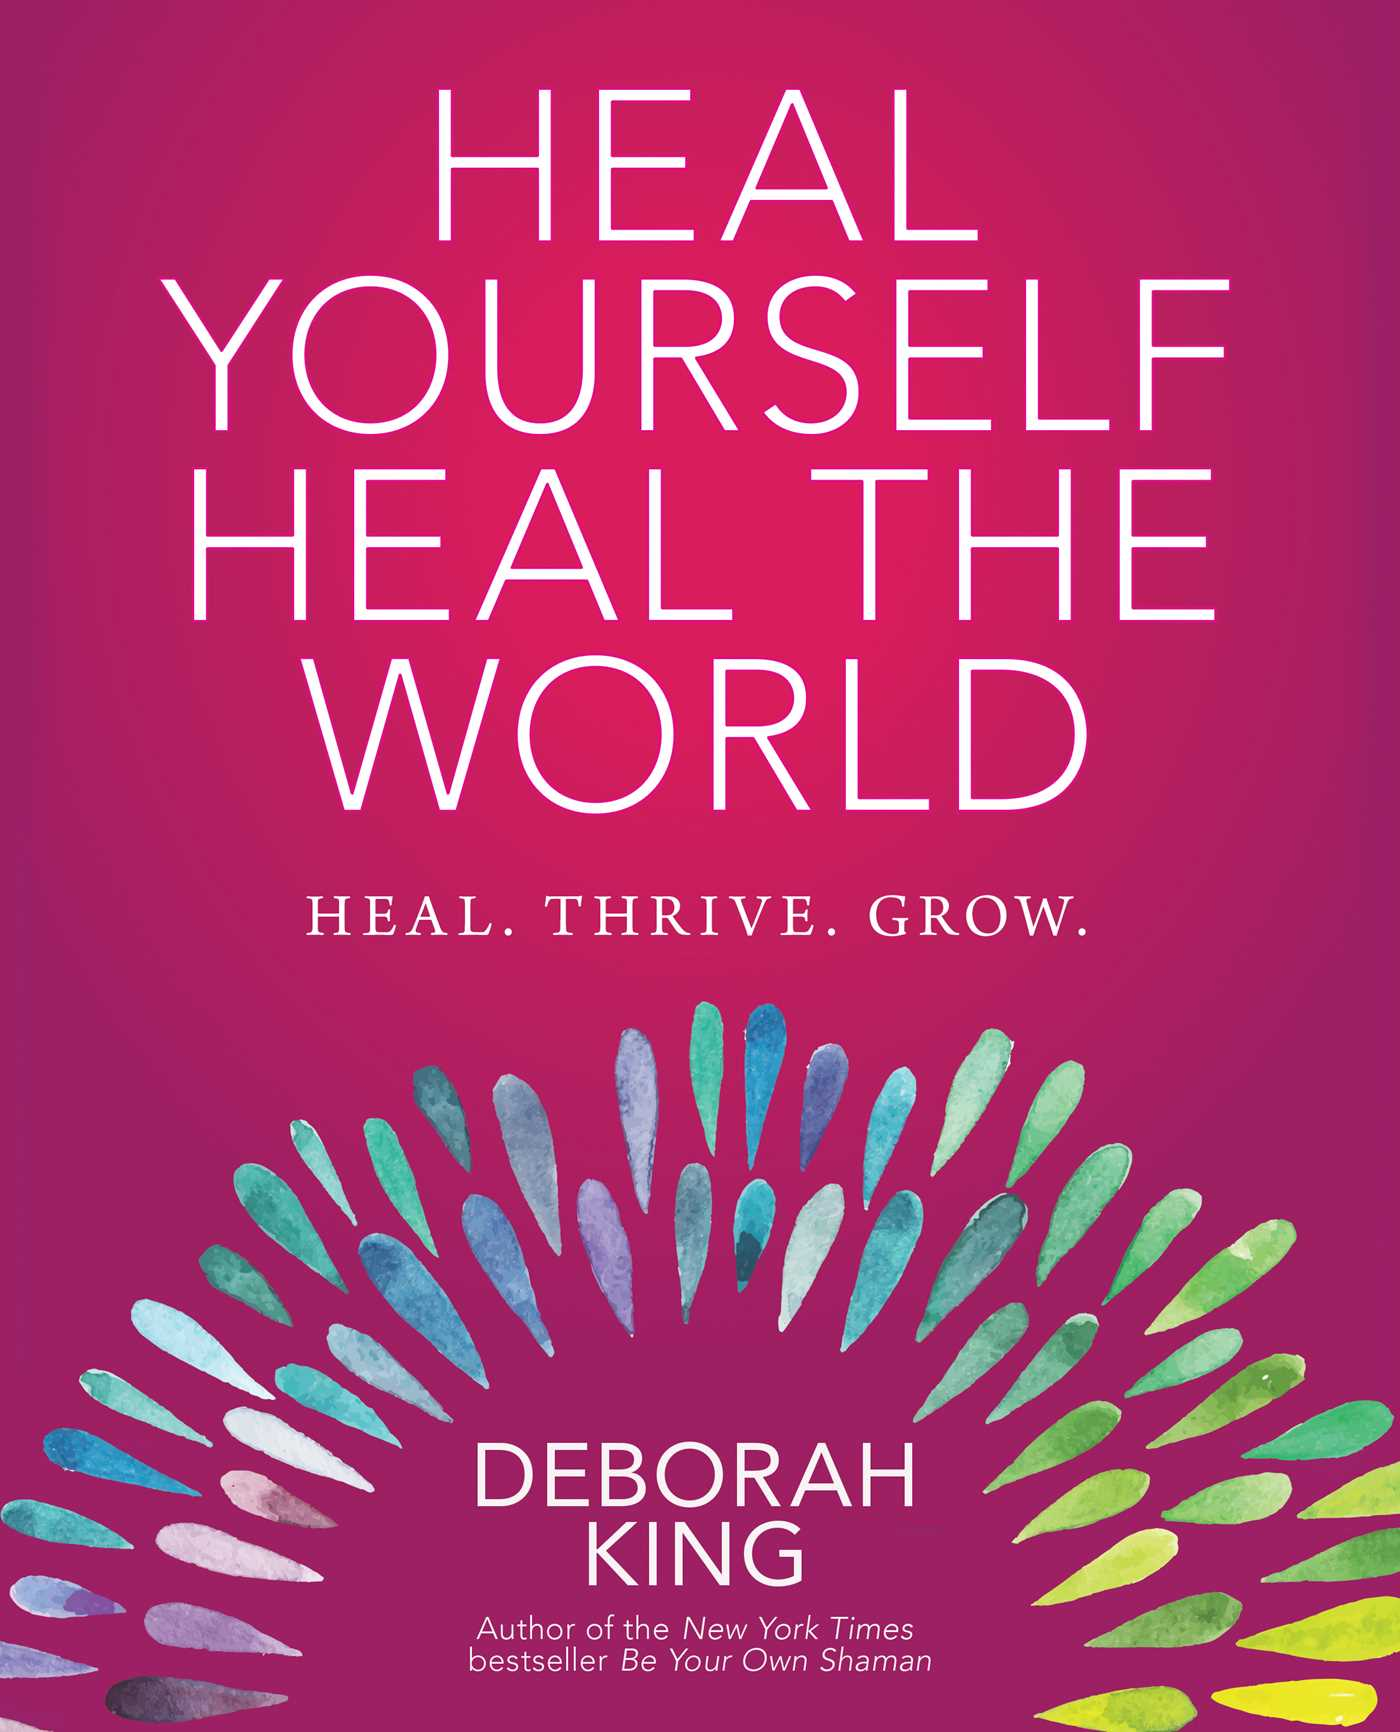 Heal yourself heal the world 9781582705866 hr